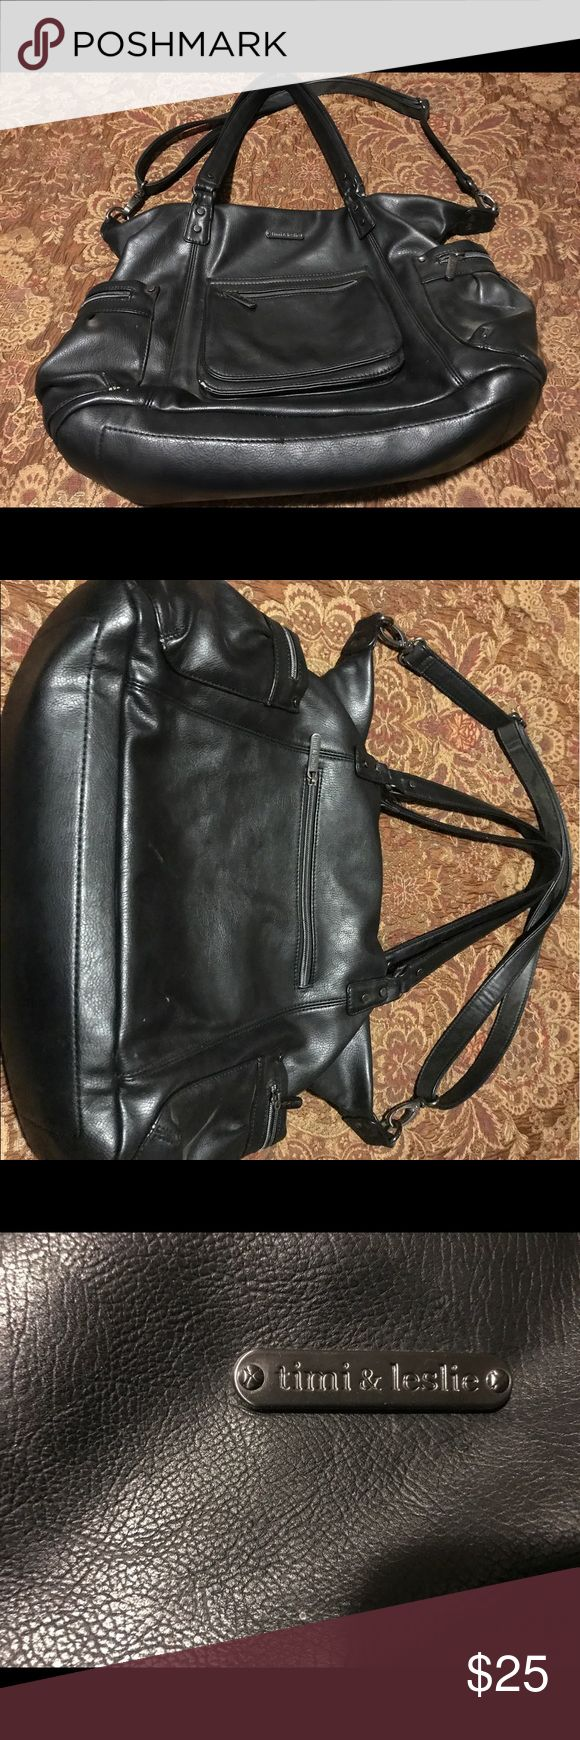 Timi & Leslie black leather diaper bag Black leather Timi & Leslie diaper bag. Long detachable strap. Multiple pockets!  Very pretty! Timi & Leslie Accessories Bags